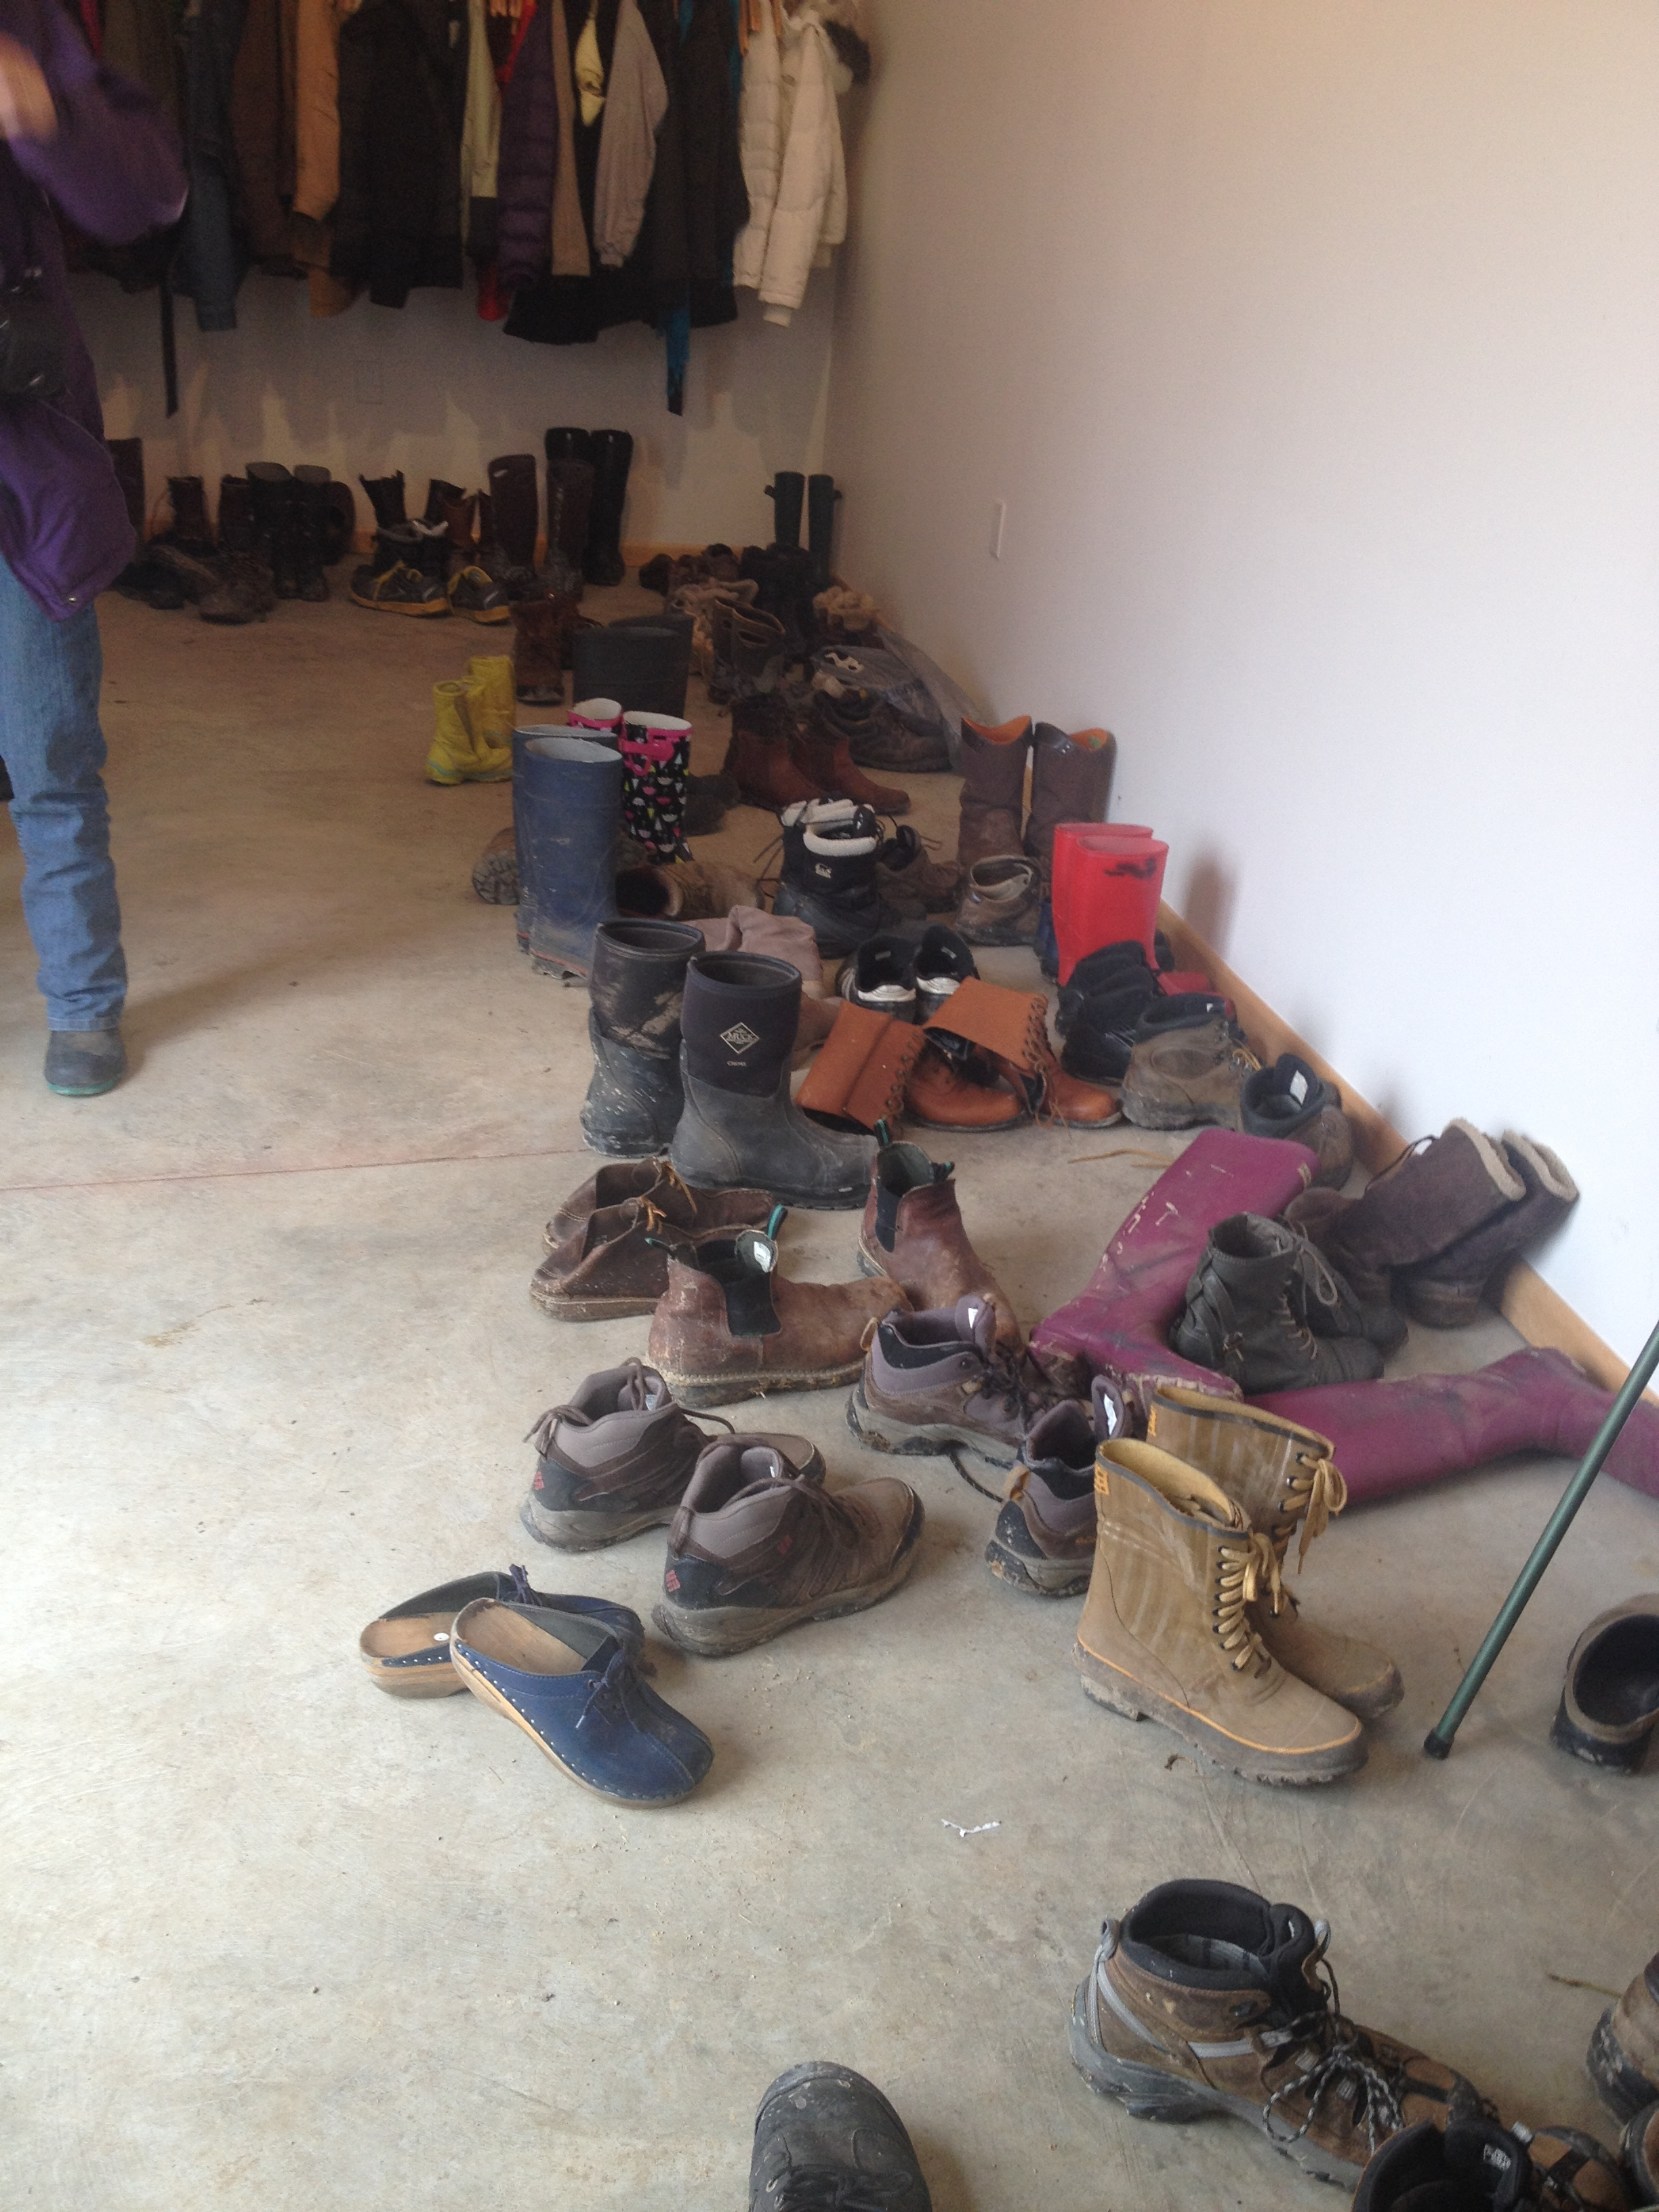 When farmers gather, boots abound.